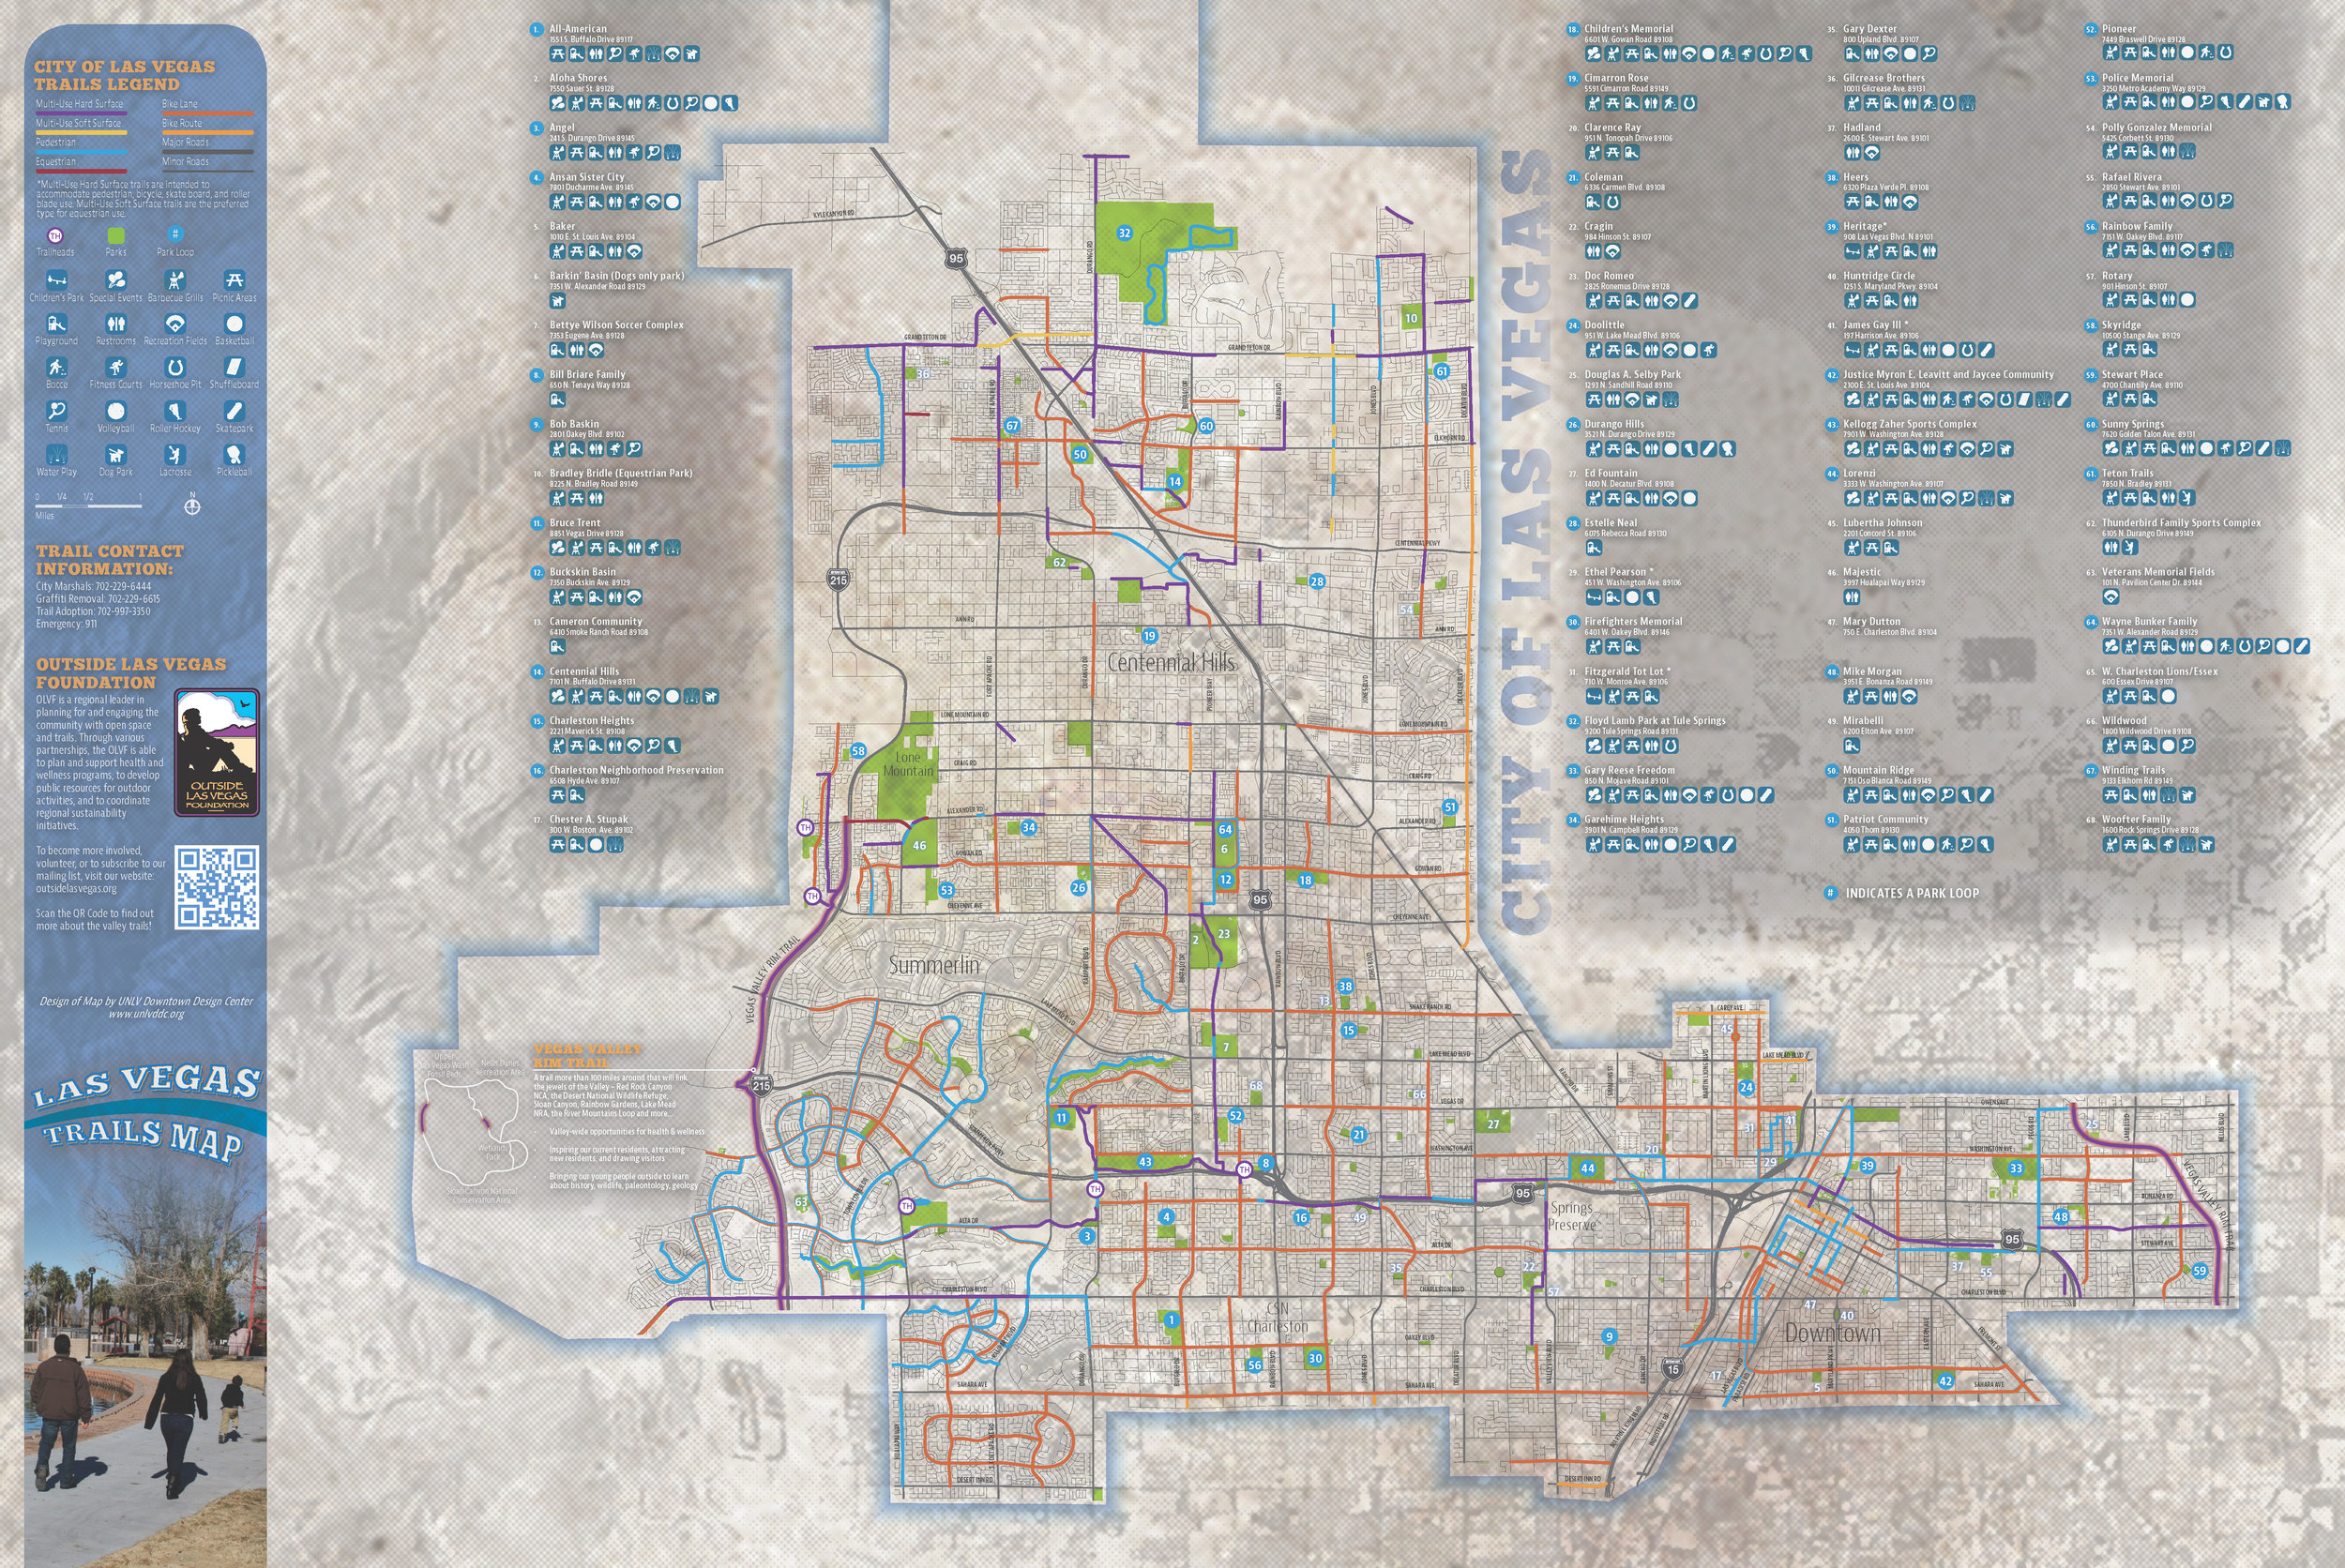 The front of the City of Las Vegas trails map. (click to enlarge)